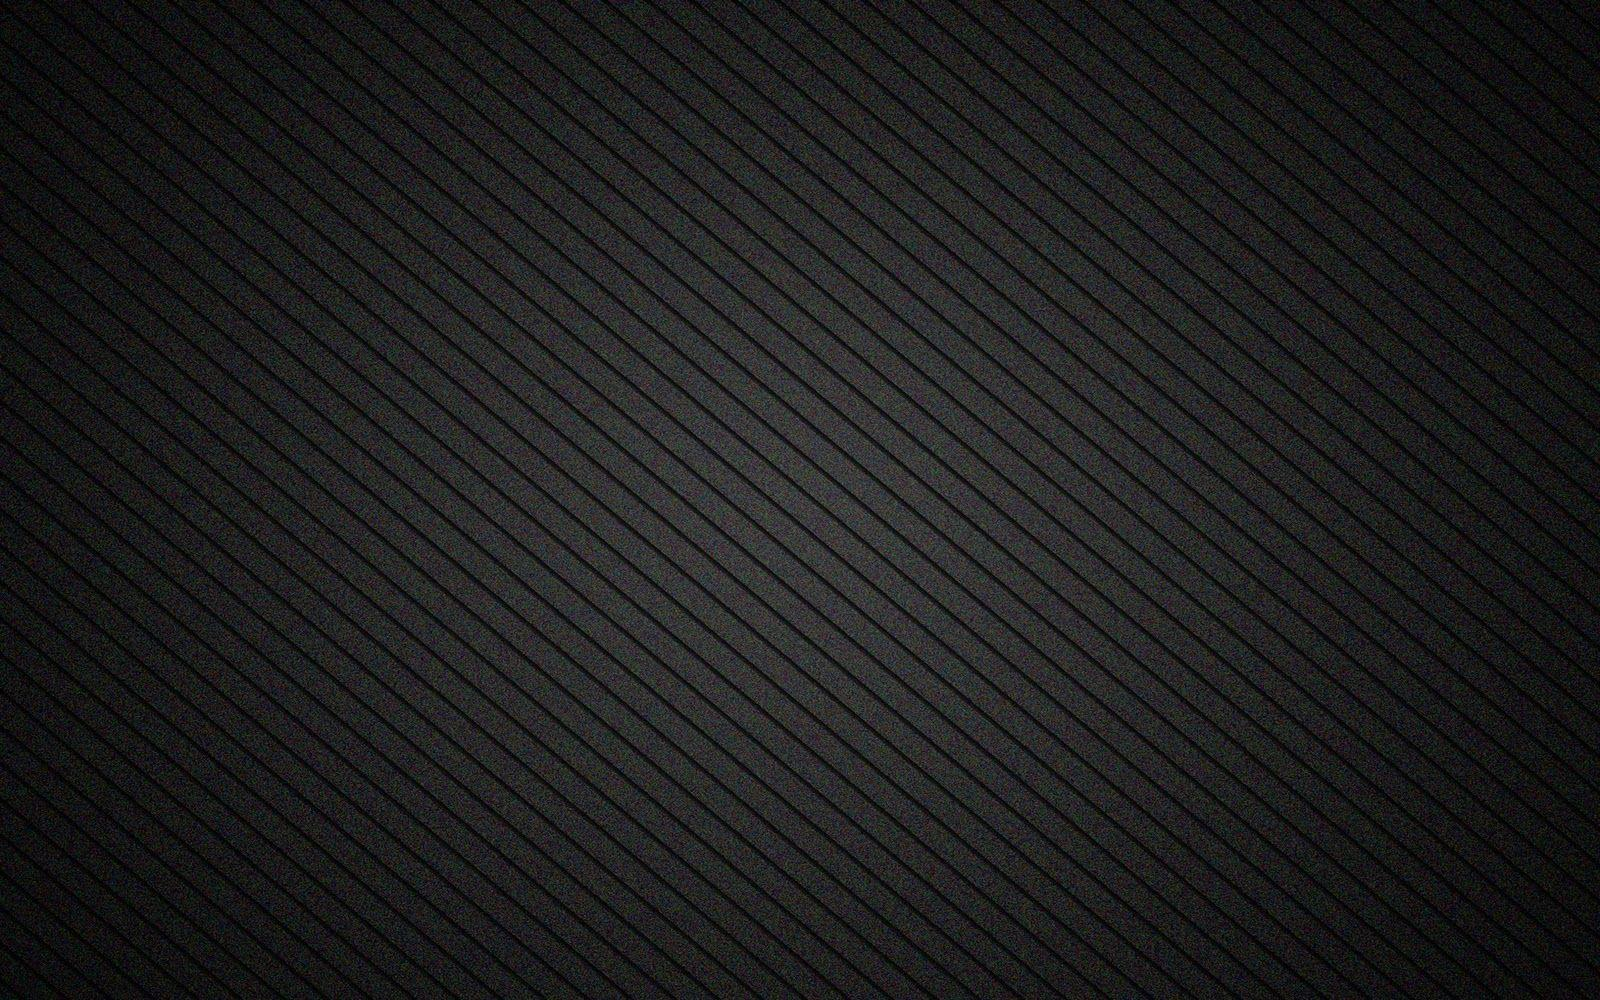 black and gray lines pattern texture powerpoint 1600x1000, black